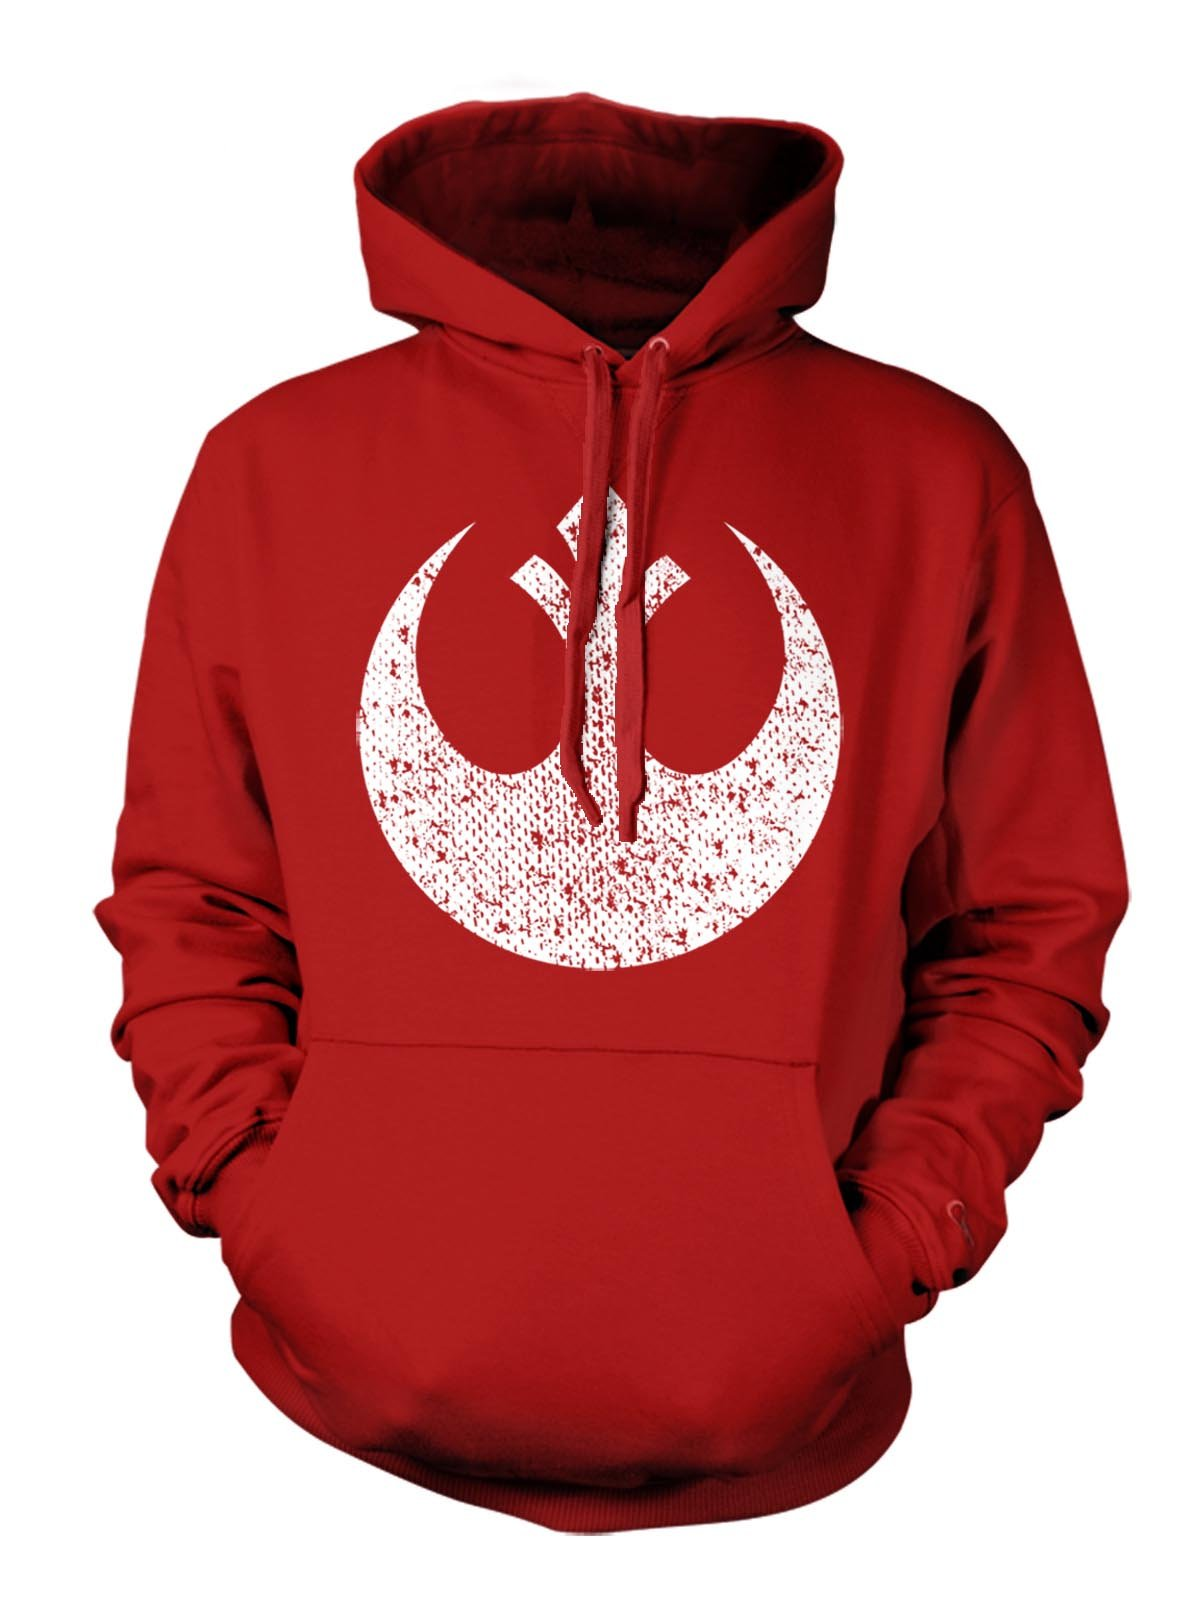 Old Rebel - Star Wars Men's Hoodie Sweatshirt